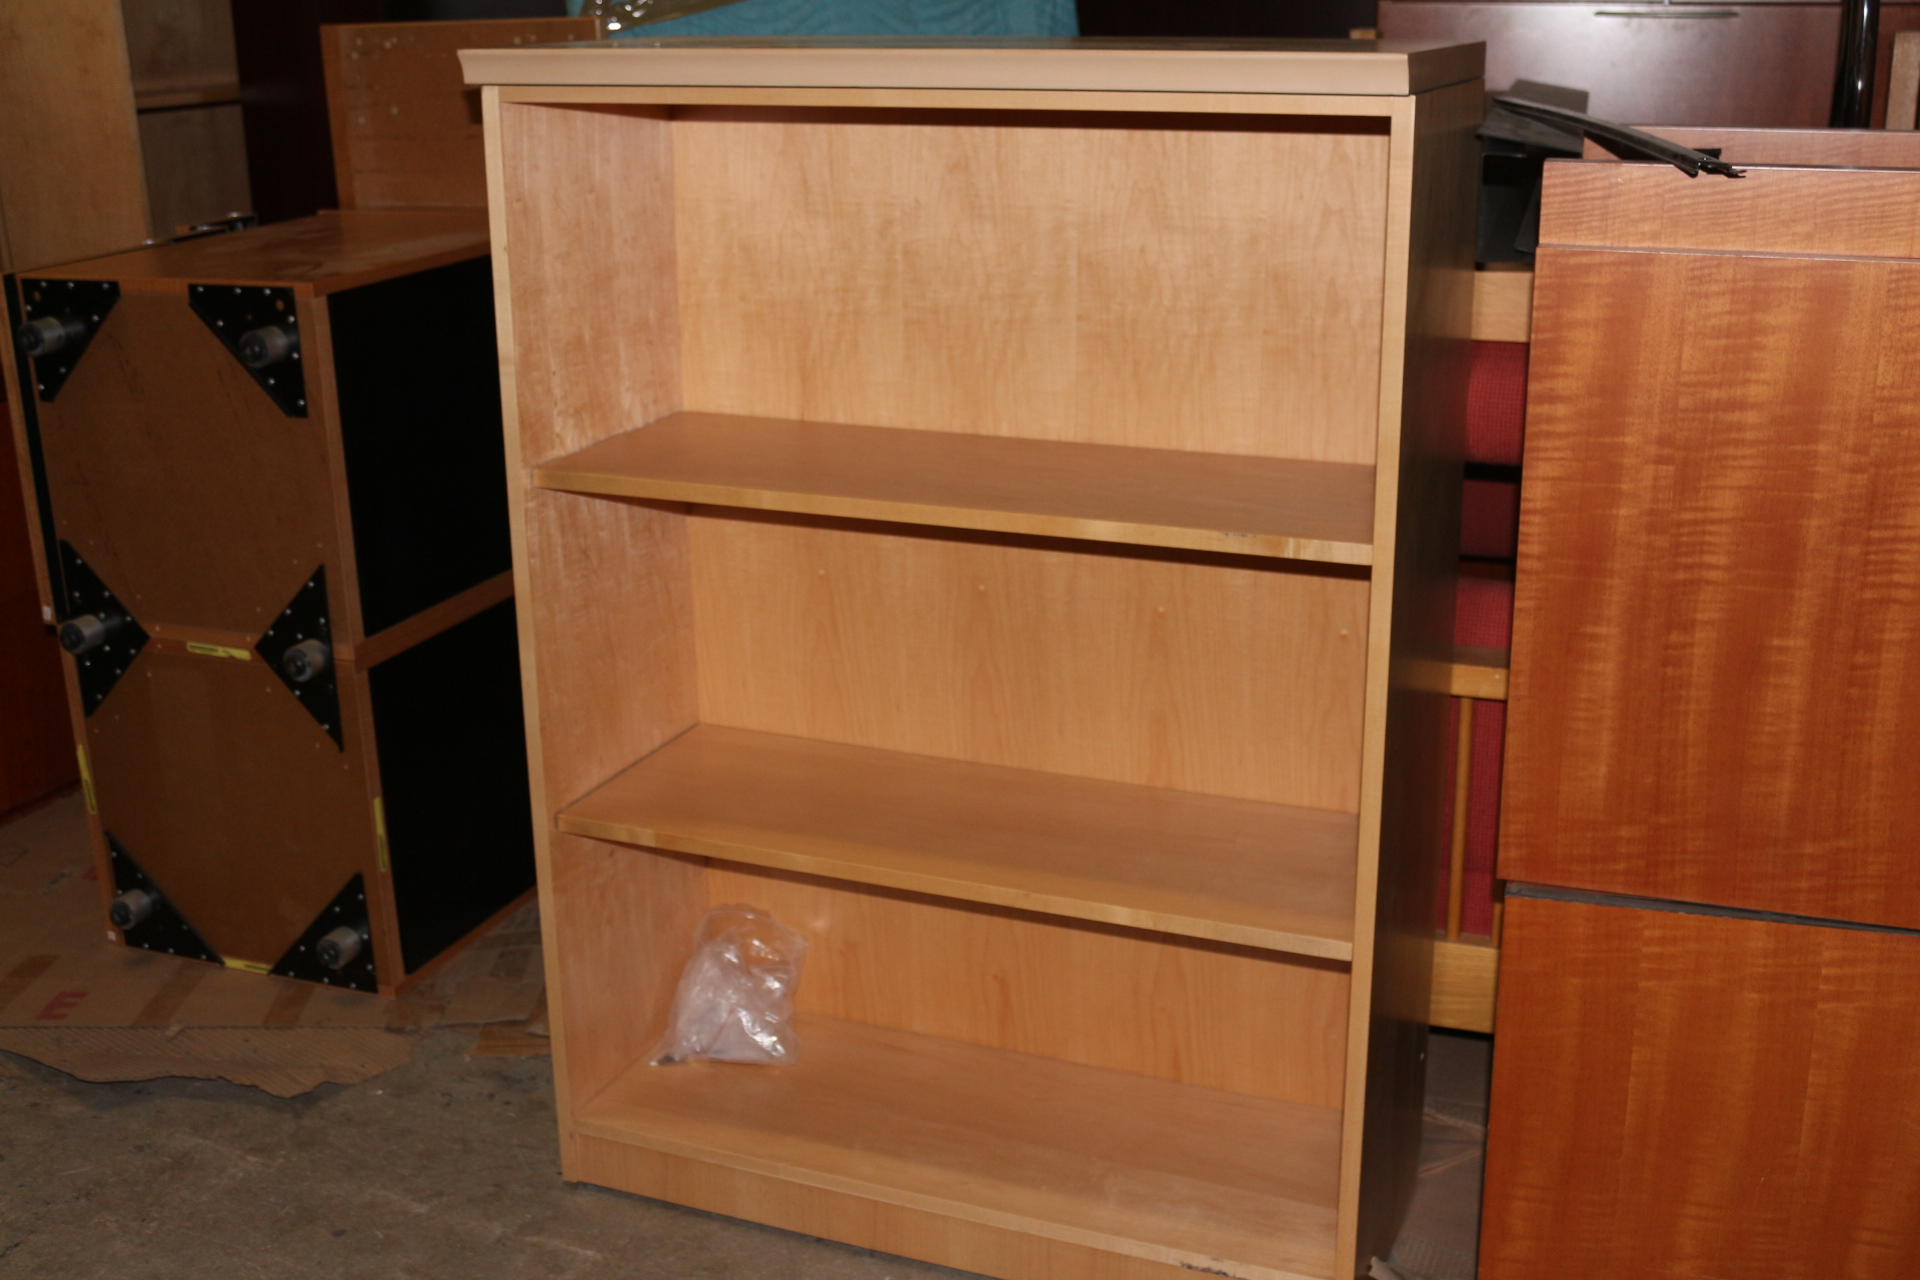 peartreeofficefurniture_peartreeofficefurniture_img_0989.jpg